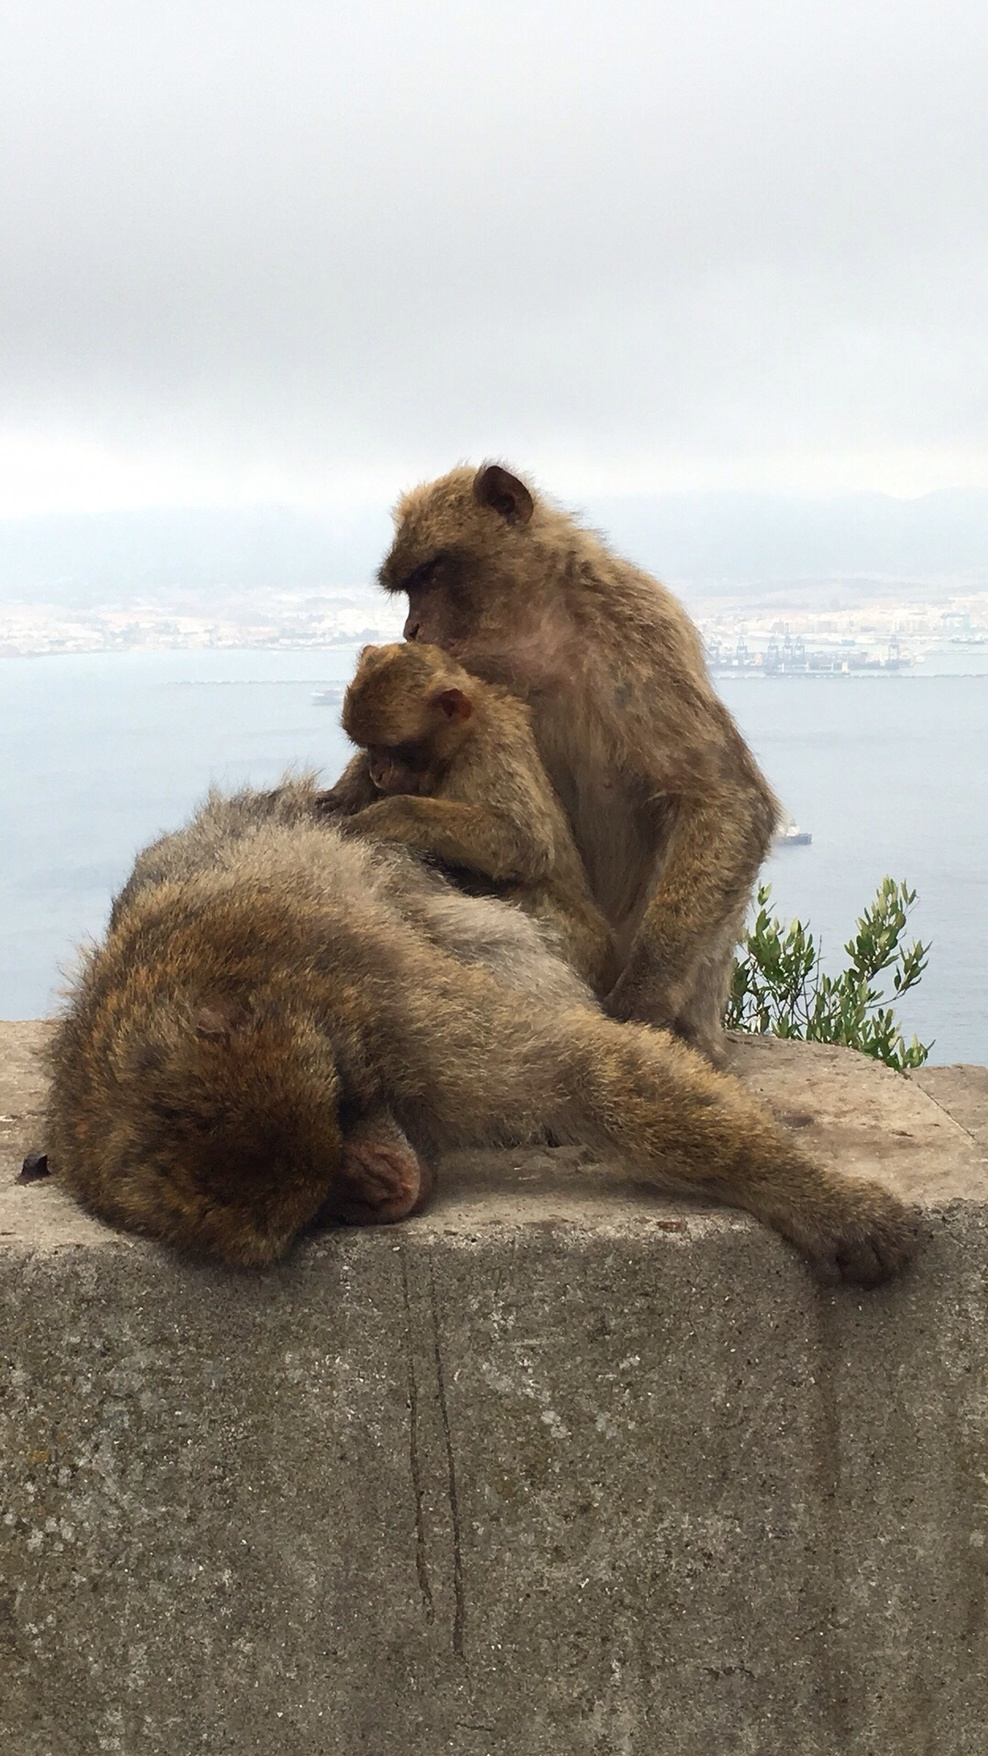 The monkeys at The rock of Gibraltar.